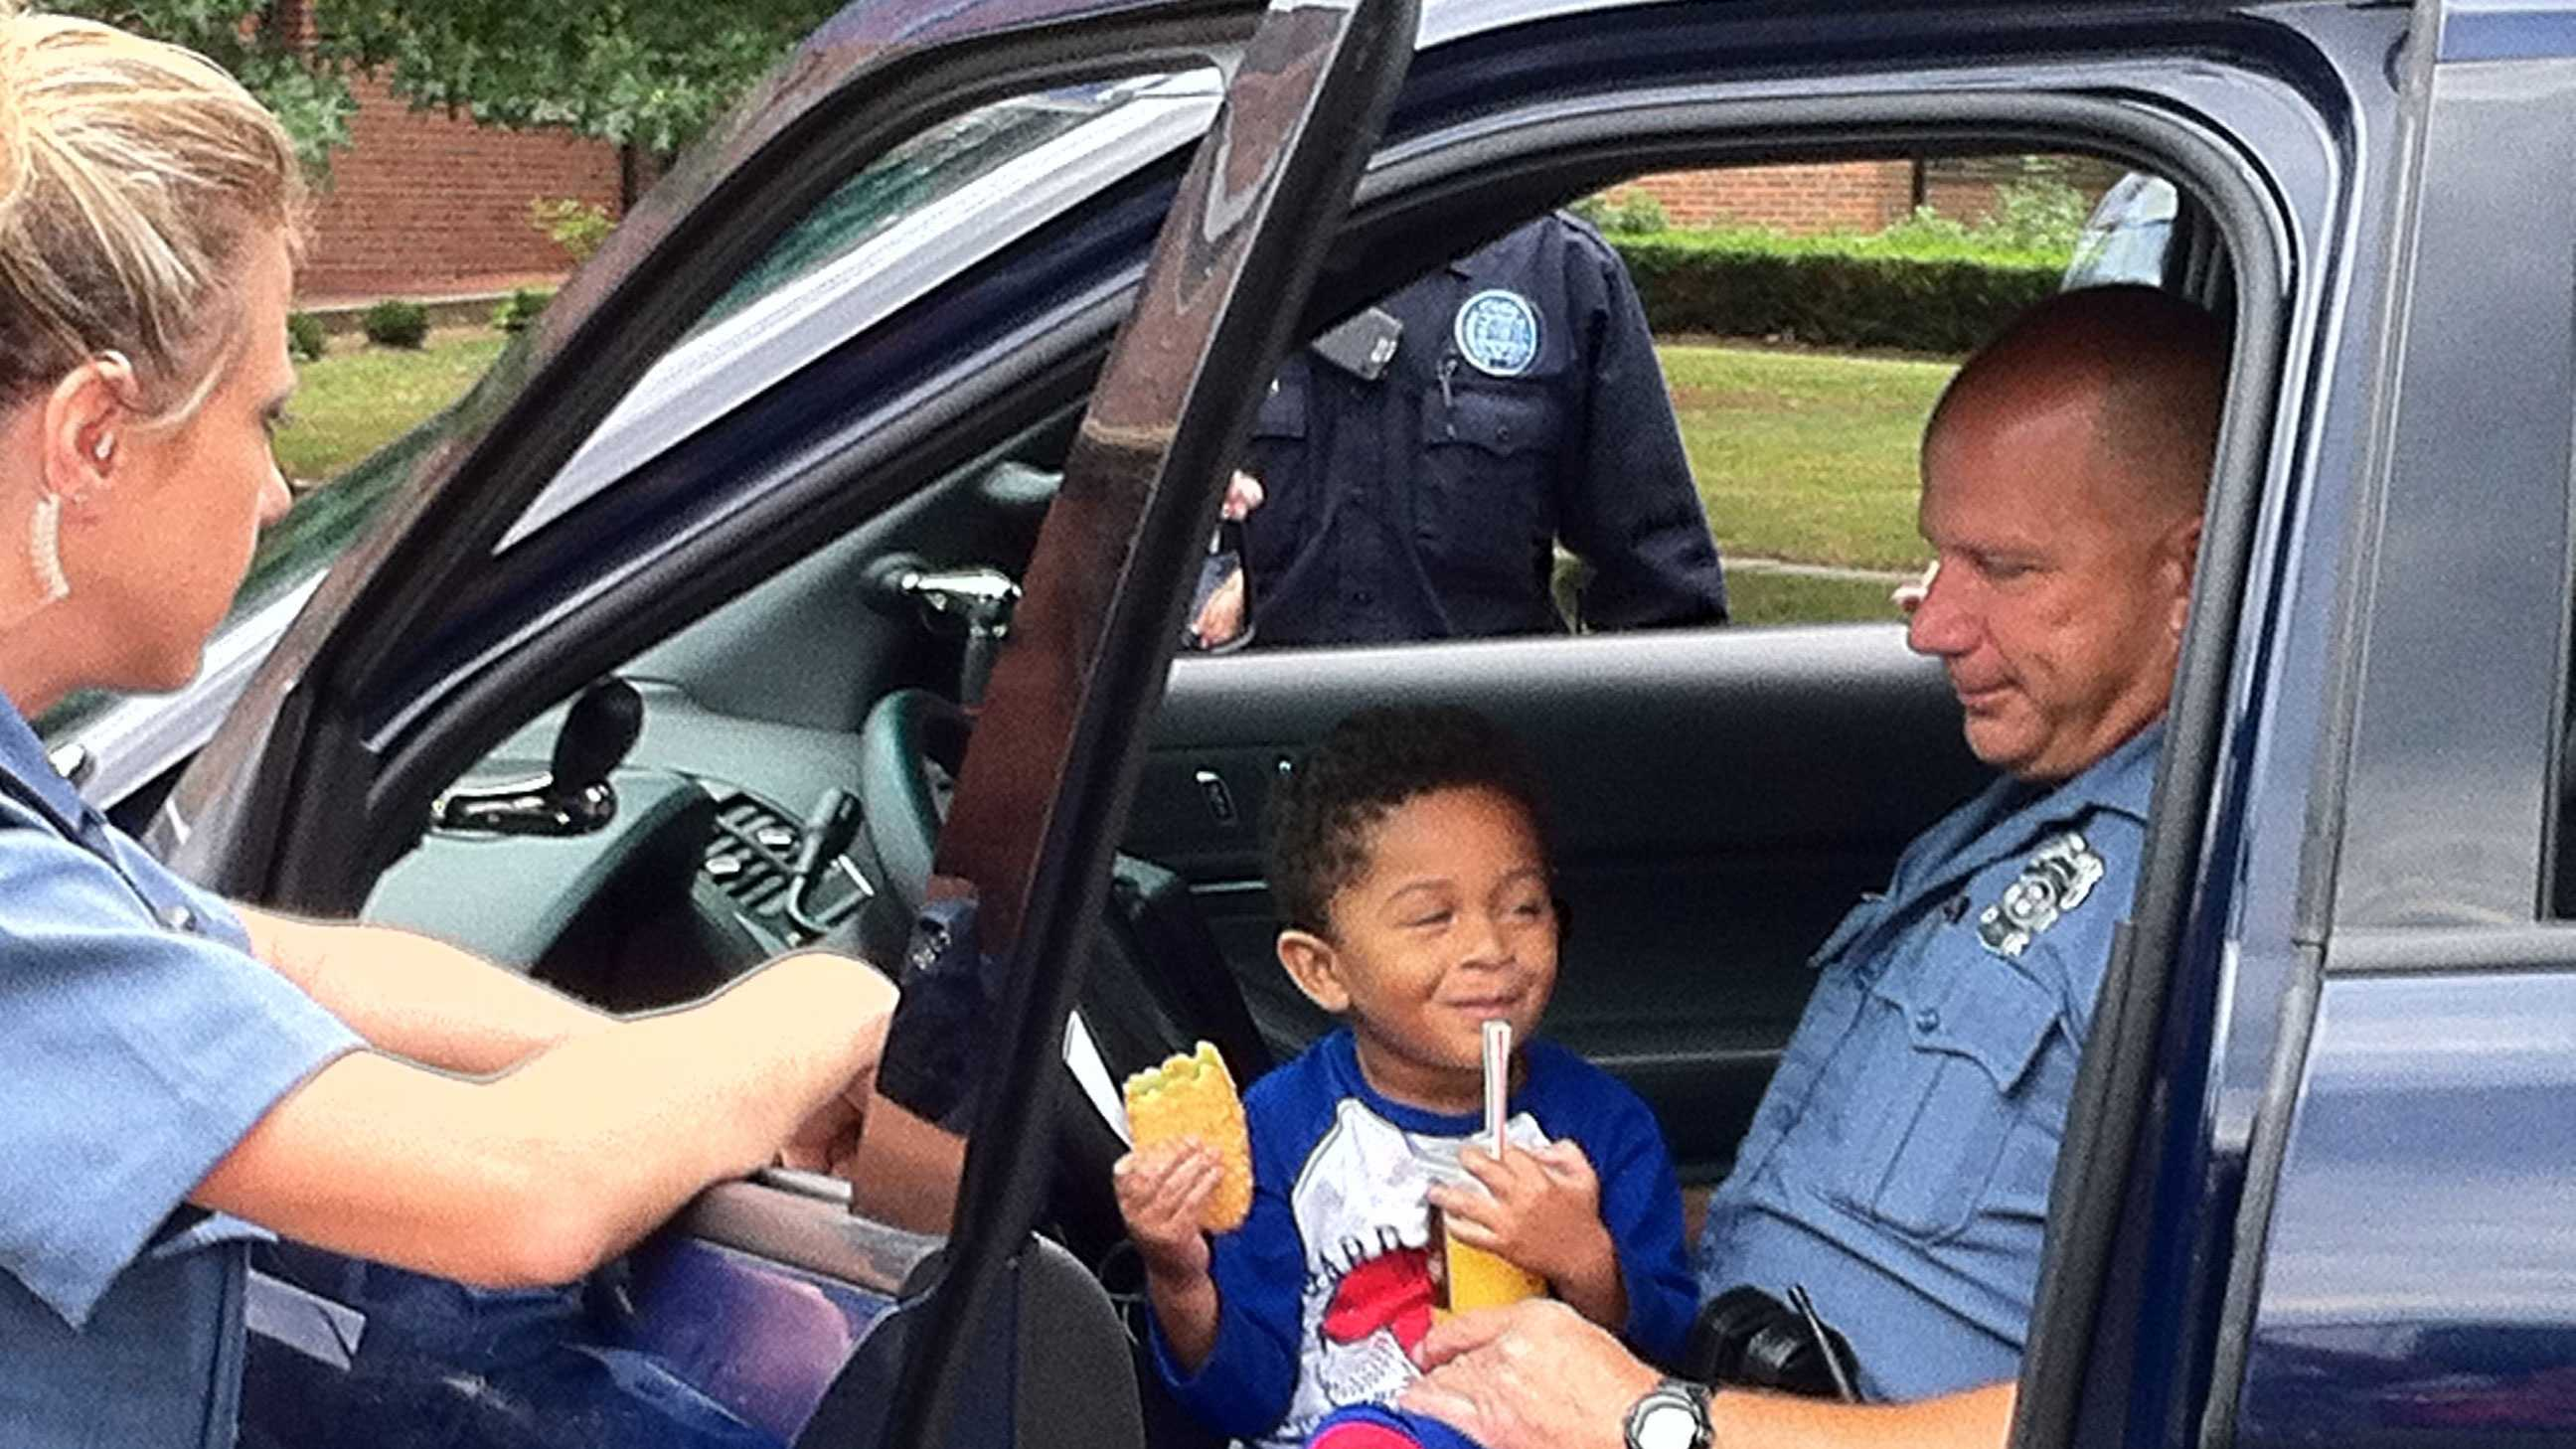 Lost boy entertained by officers